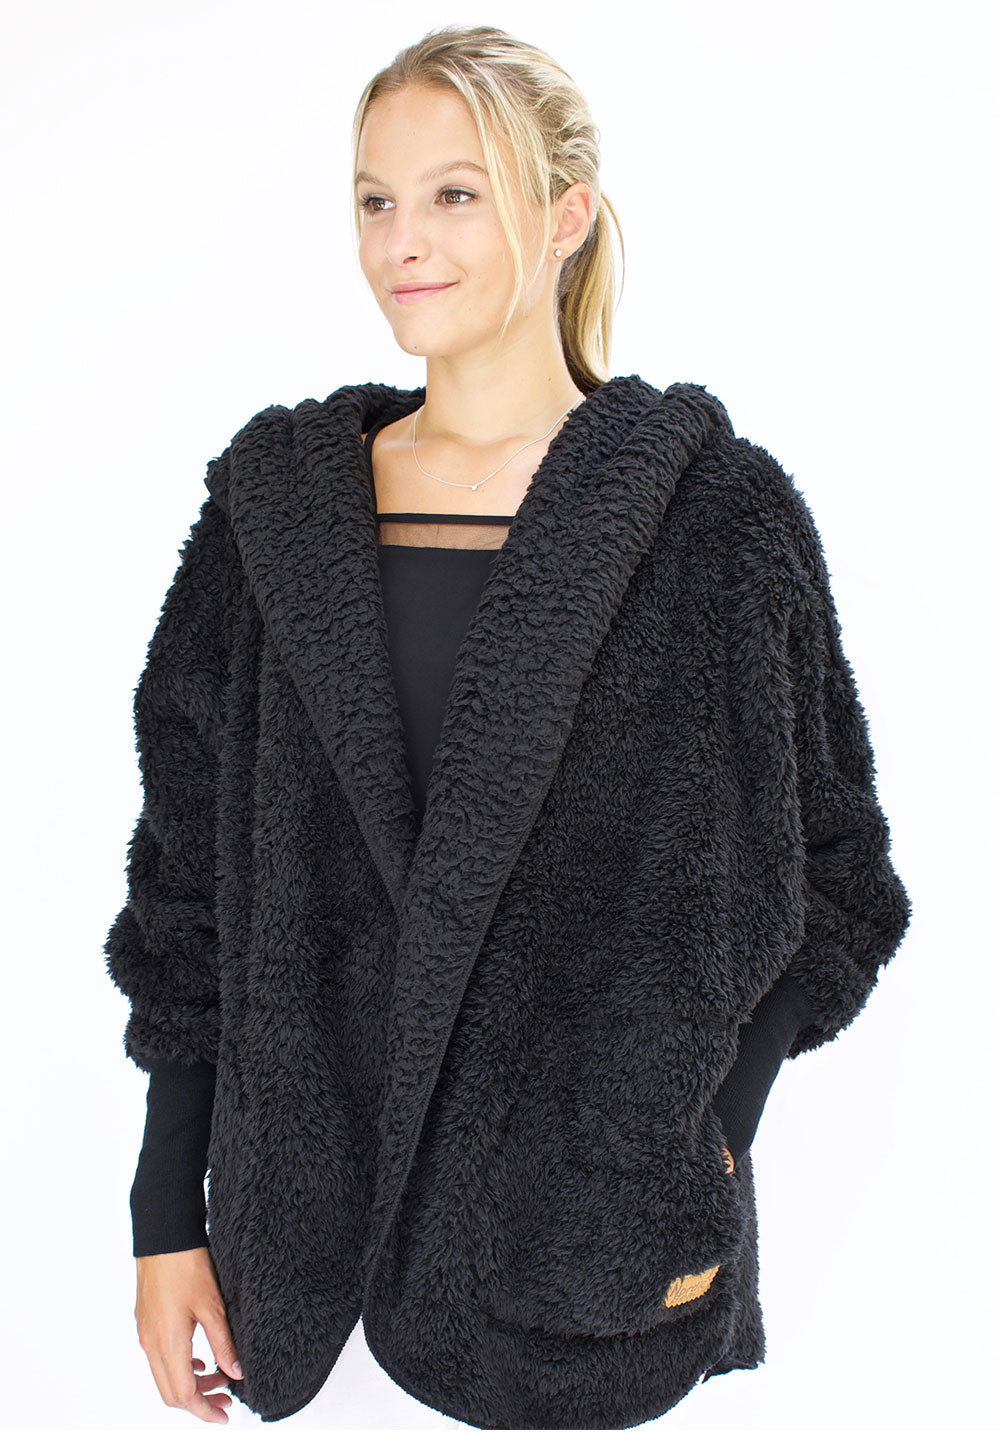 Nordic Beach Cozy Wrap